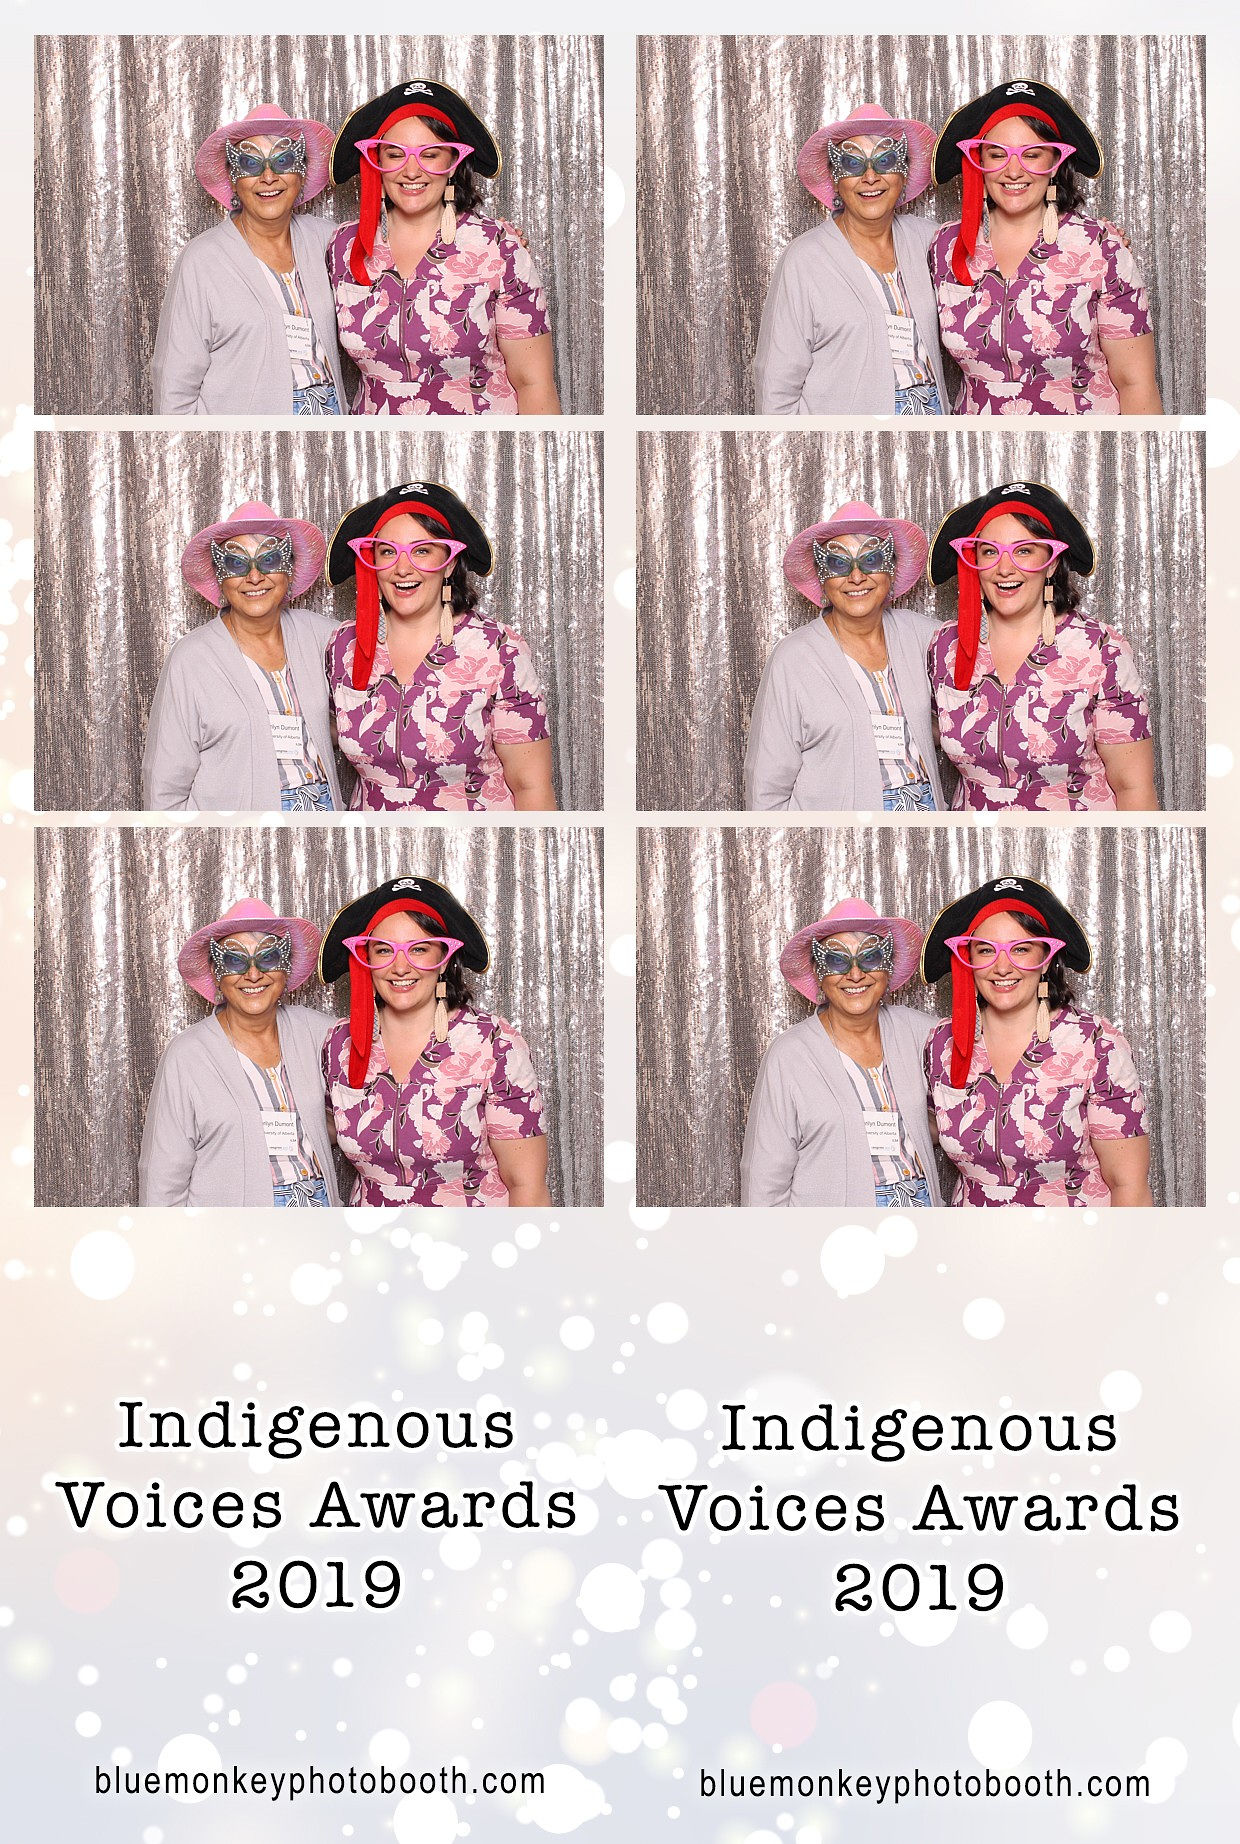 Marilyn Dumont and Brittany Johnson in a photobook IVA 2019.jpg